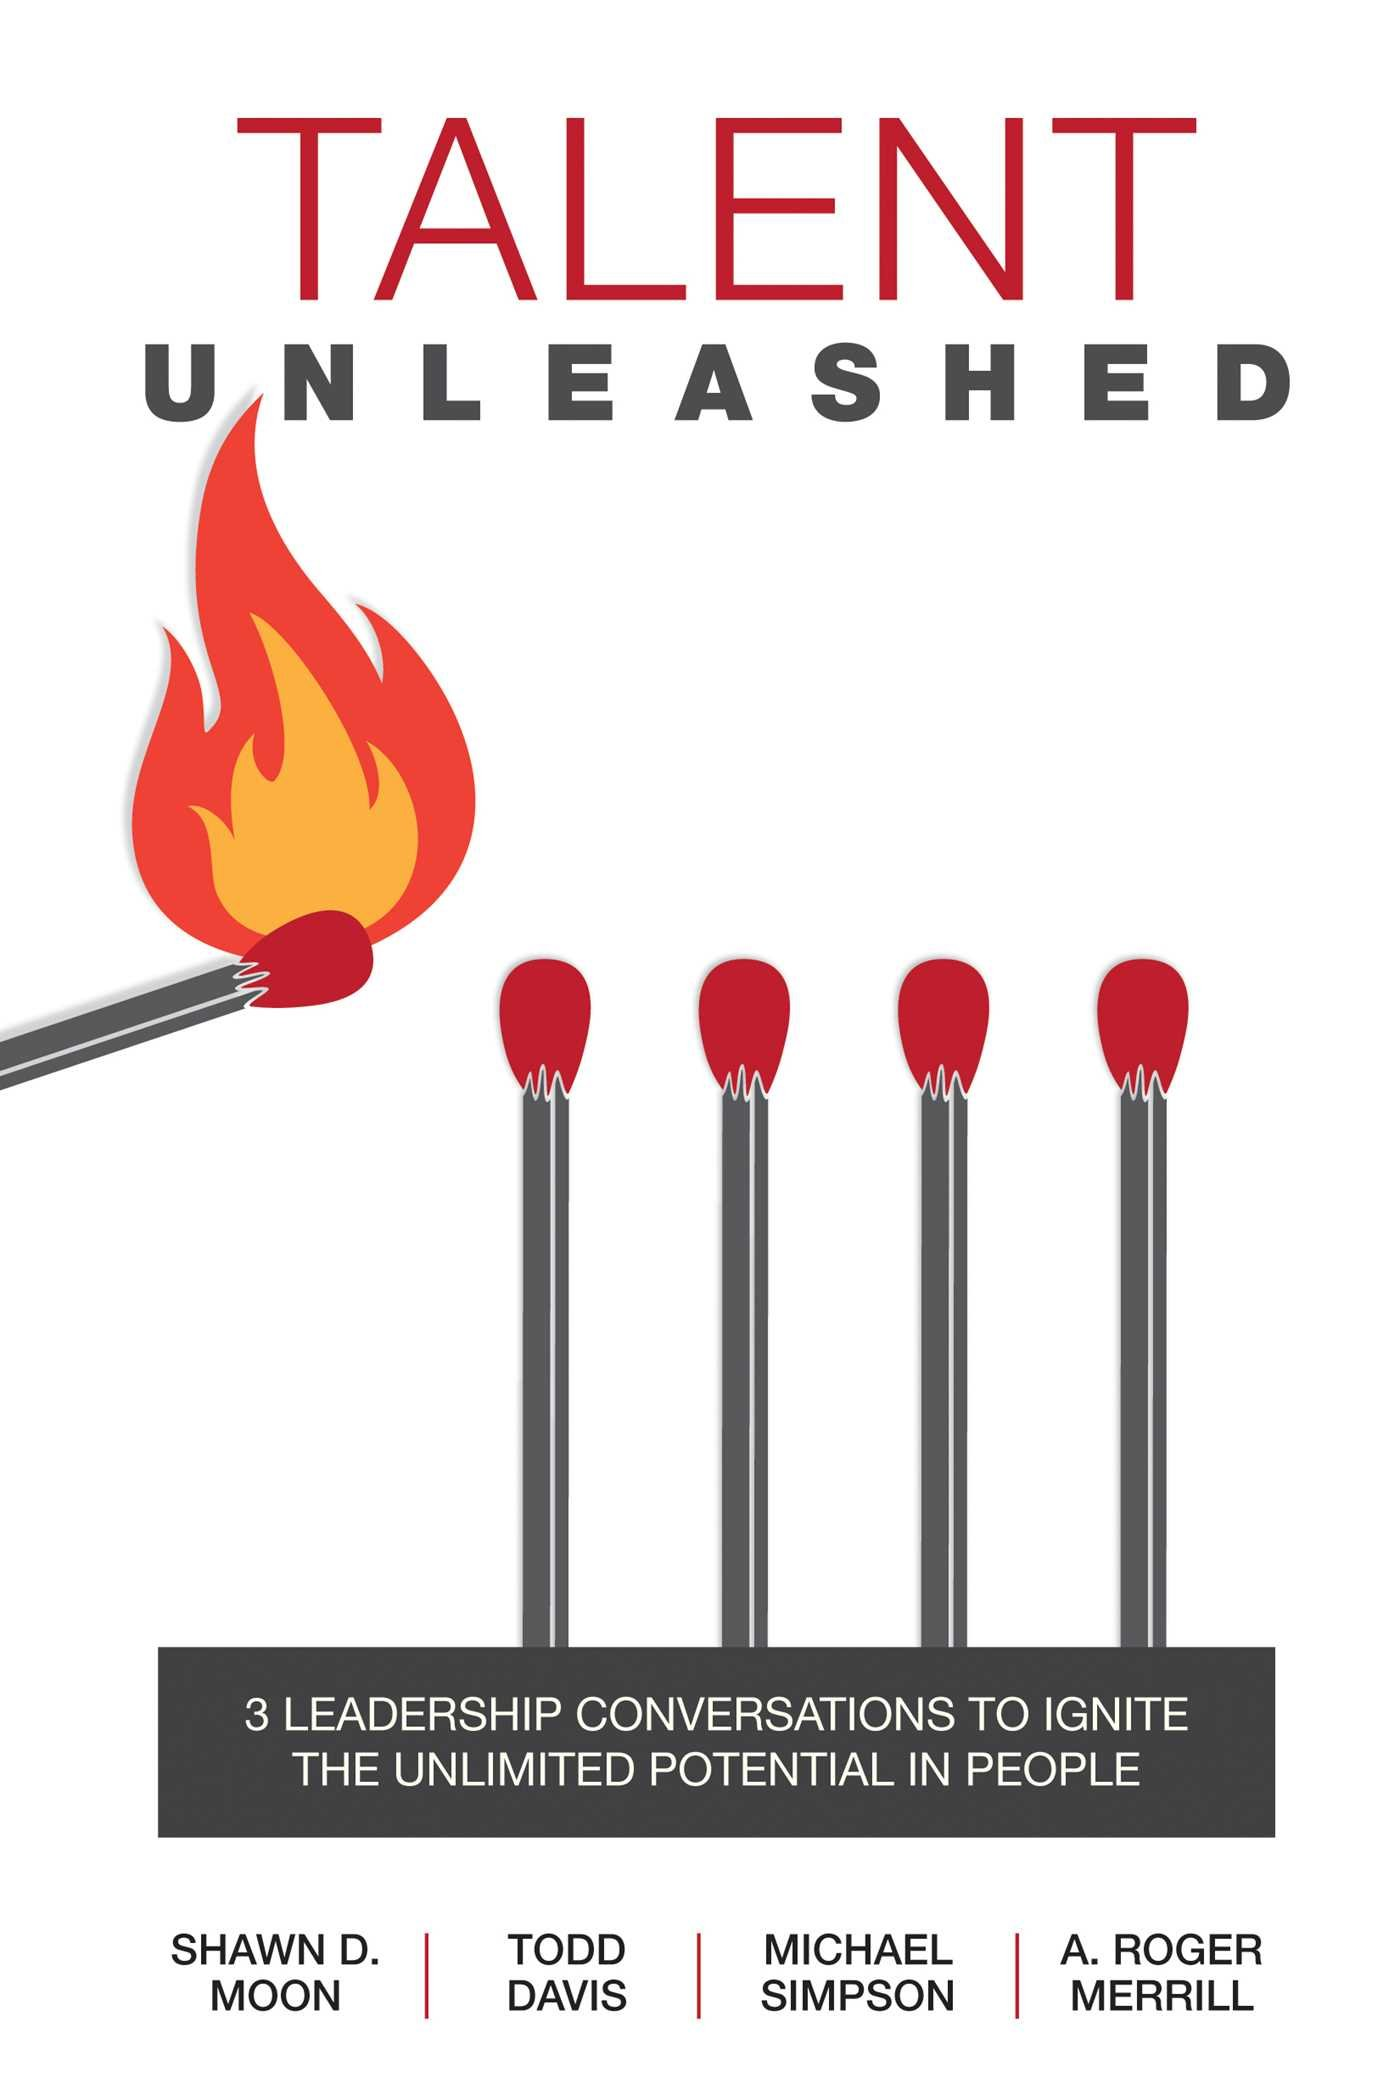 Amazon.com: Talent Unleashed: 3 Leadership Conversations to Ignite the  Unlimited Potential in People (9781682610022): A. Roger Merrill, Todd  Davis, ...